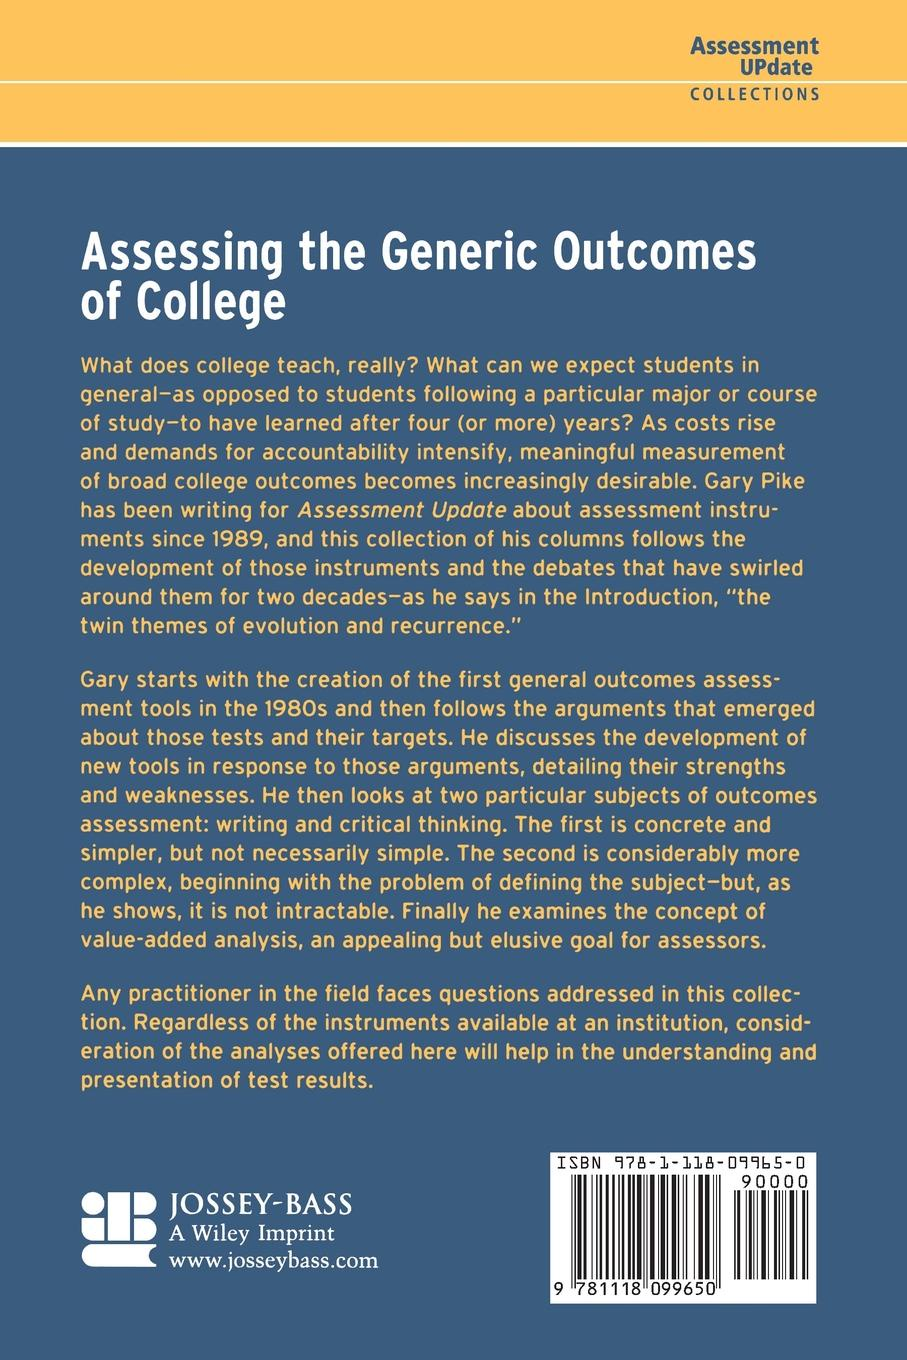 Pike Assessing Generic Outcomes in assessing creativity